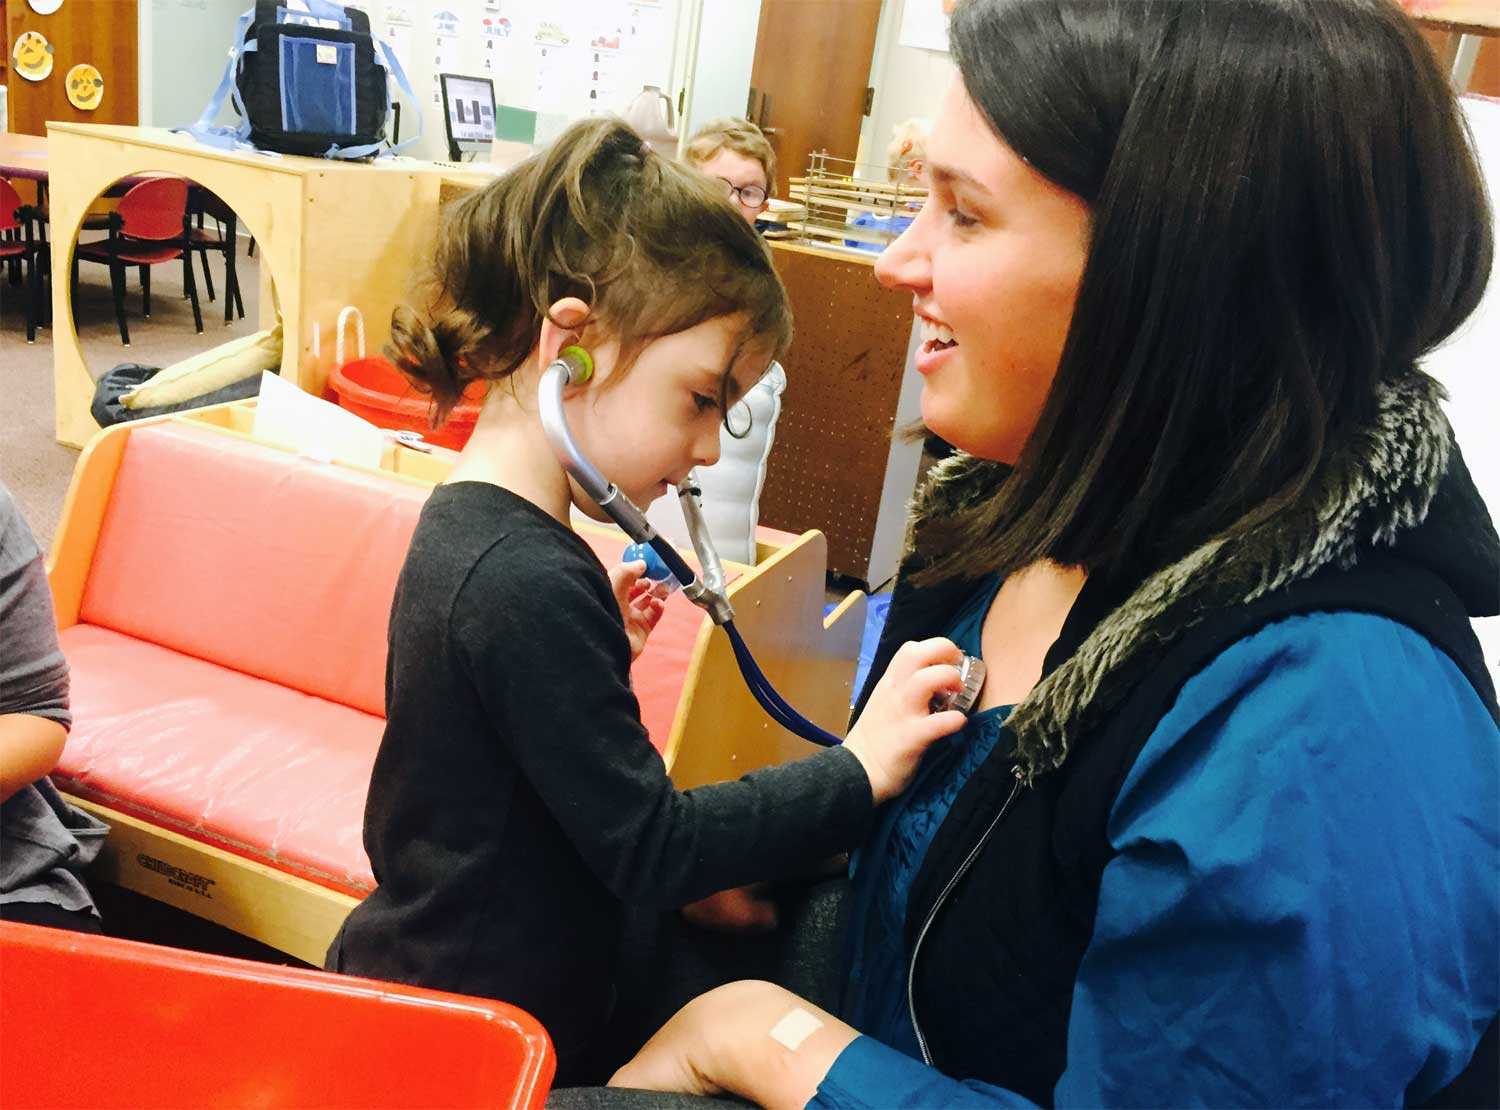 A young student uses a play stethoscope to listen to her teacher's heart.